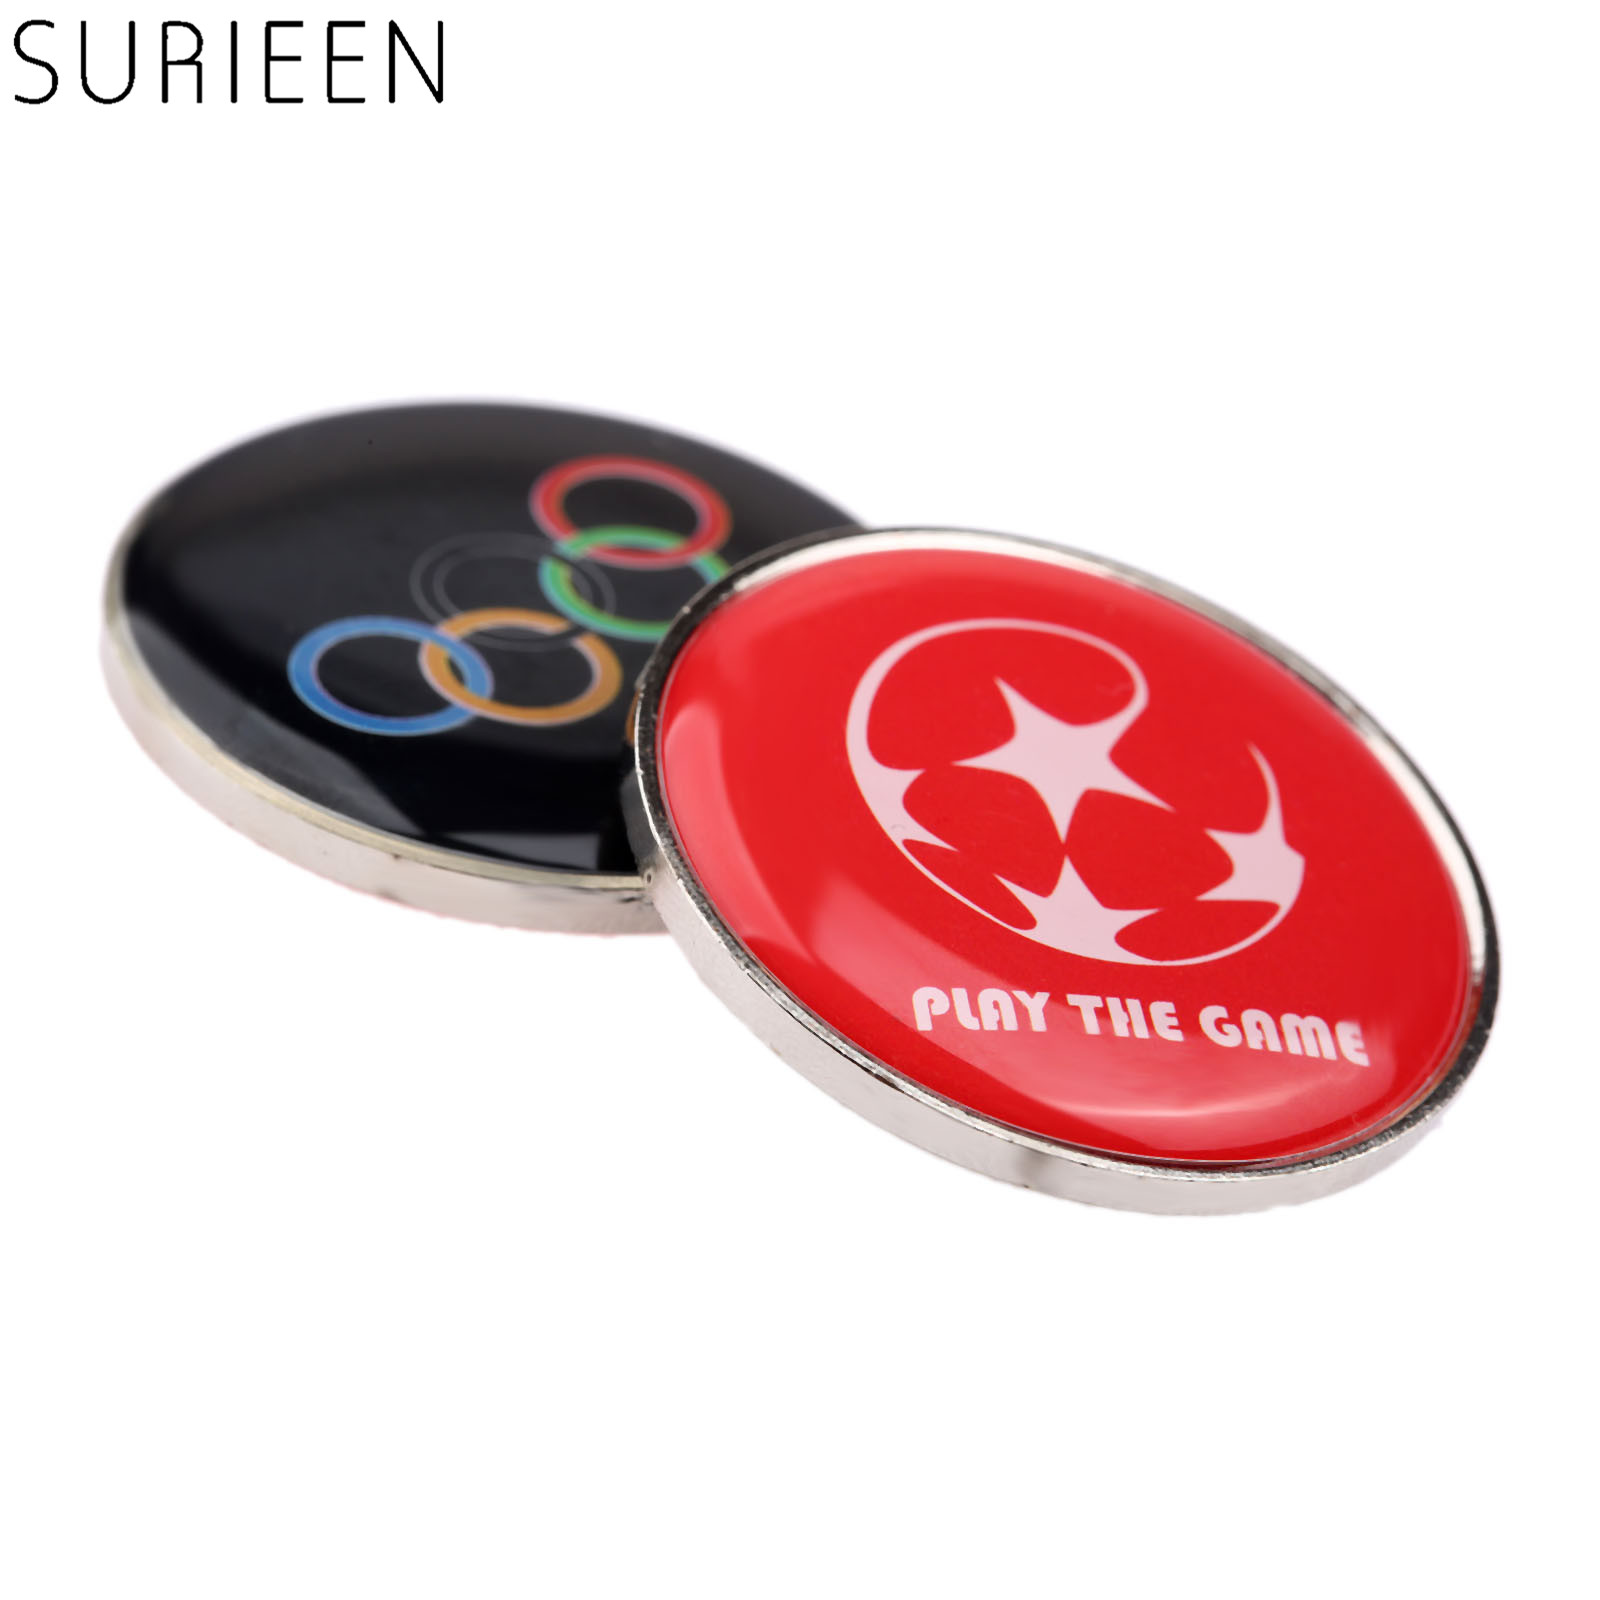 1 Pc Outdoor Sports Soccer Football Match Pick Edge Finder Toss Coin Referee Side Coins For Table Tennis Football Matches